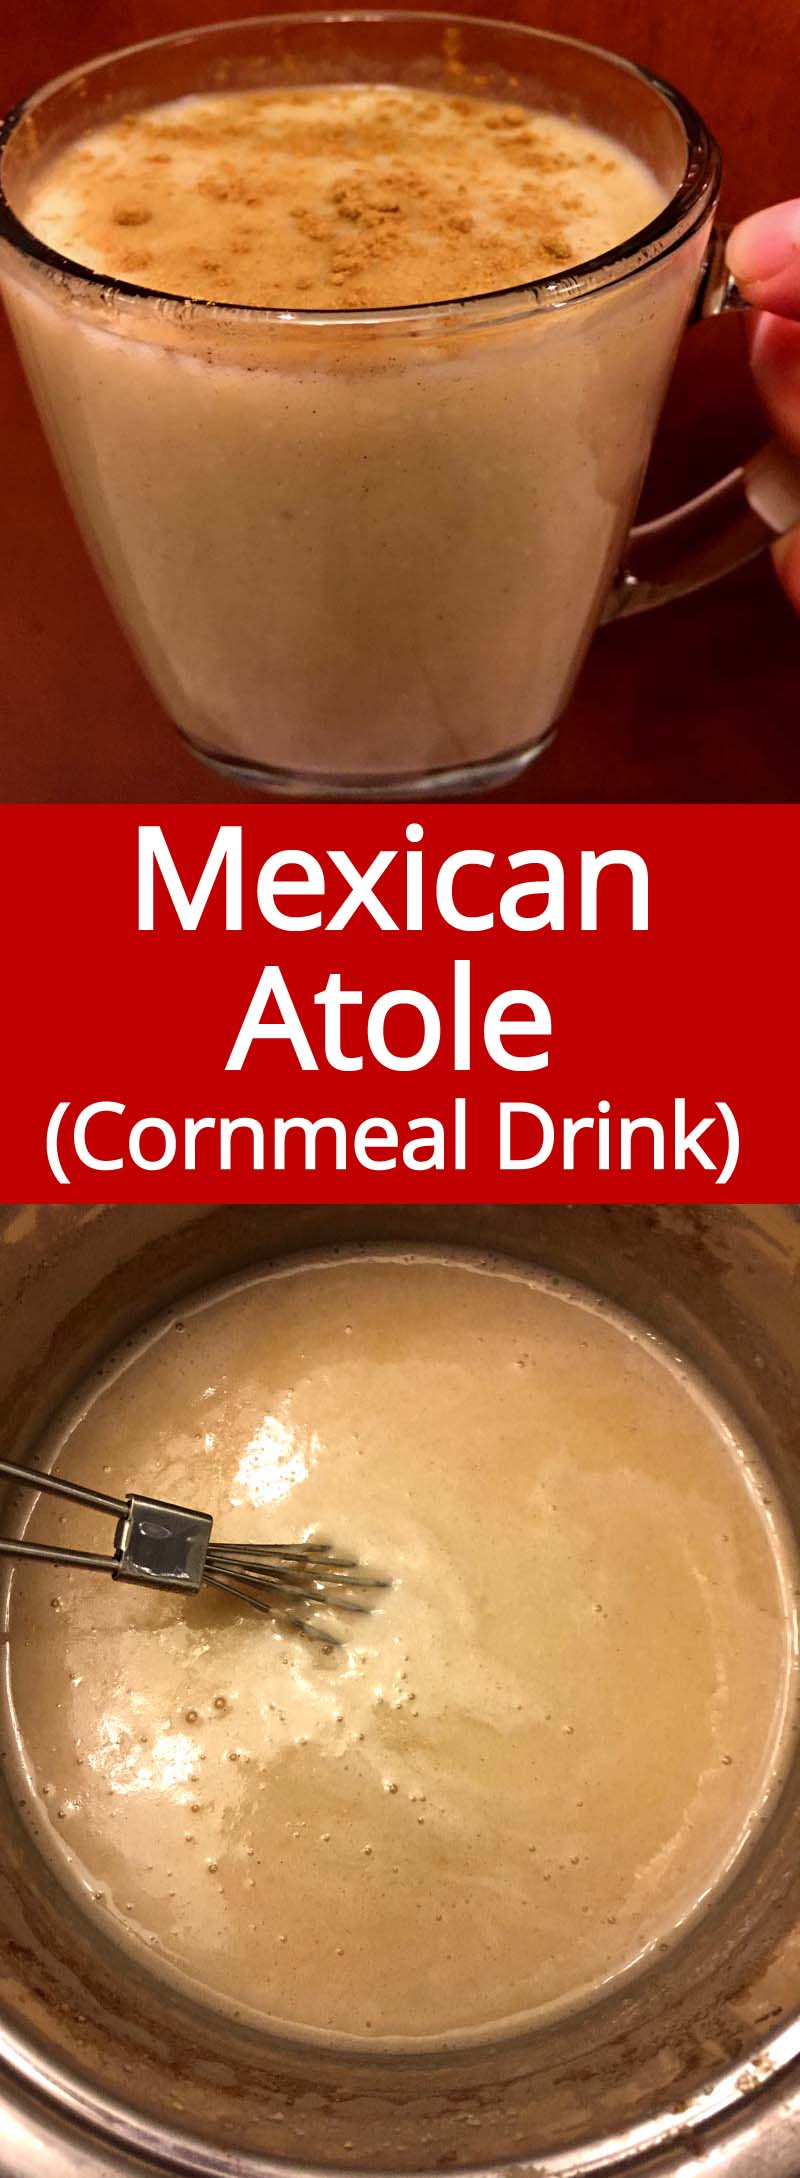 This is the authentic recipe for Mexican Atole warm cornmeal drink.  This stuff is so good! Perfect for winter!